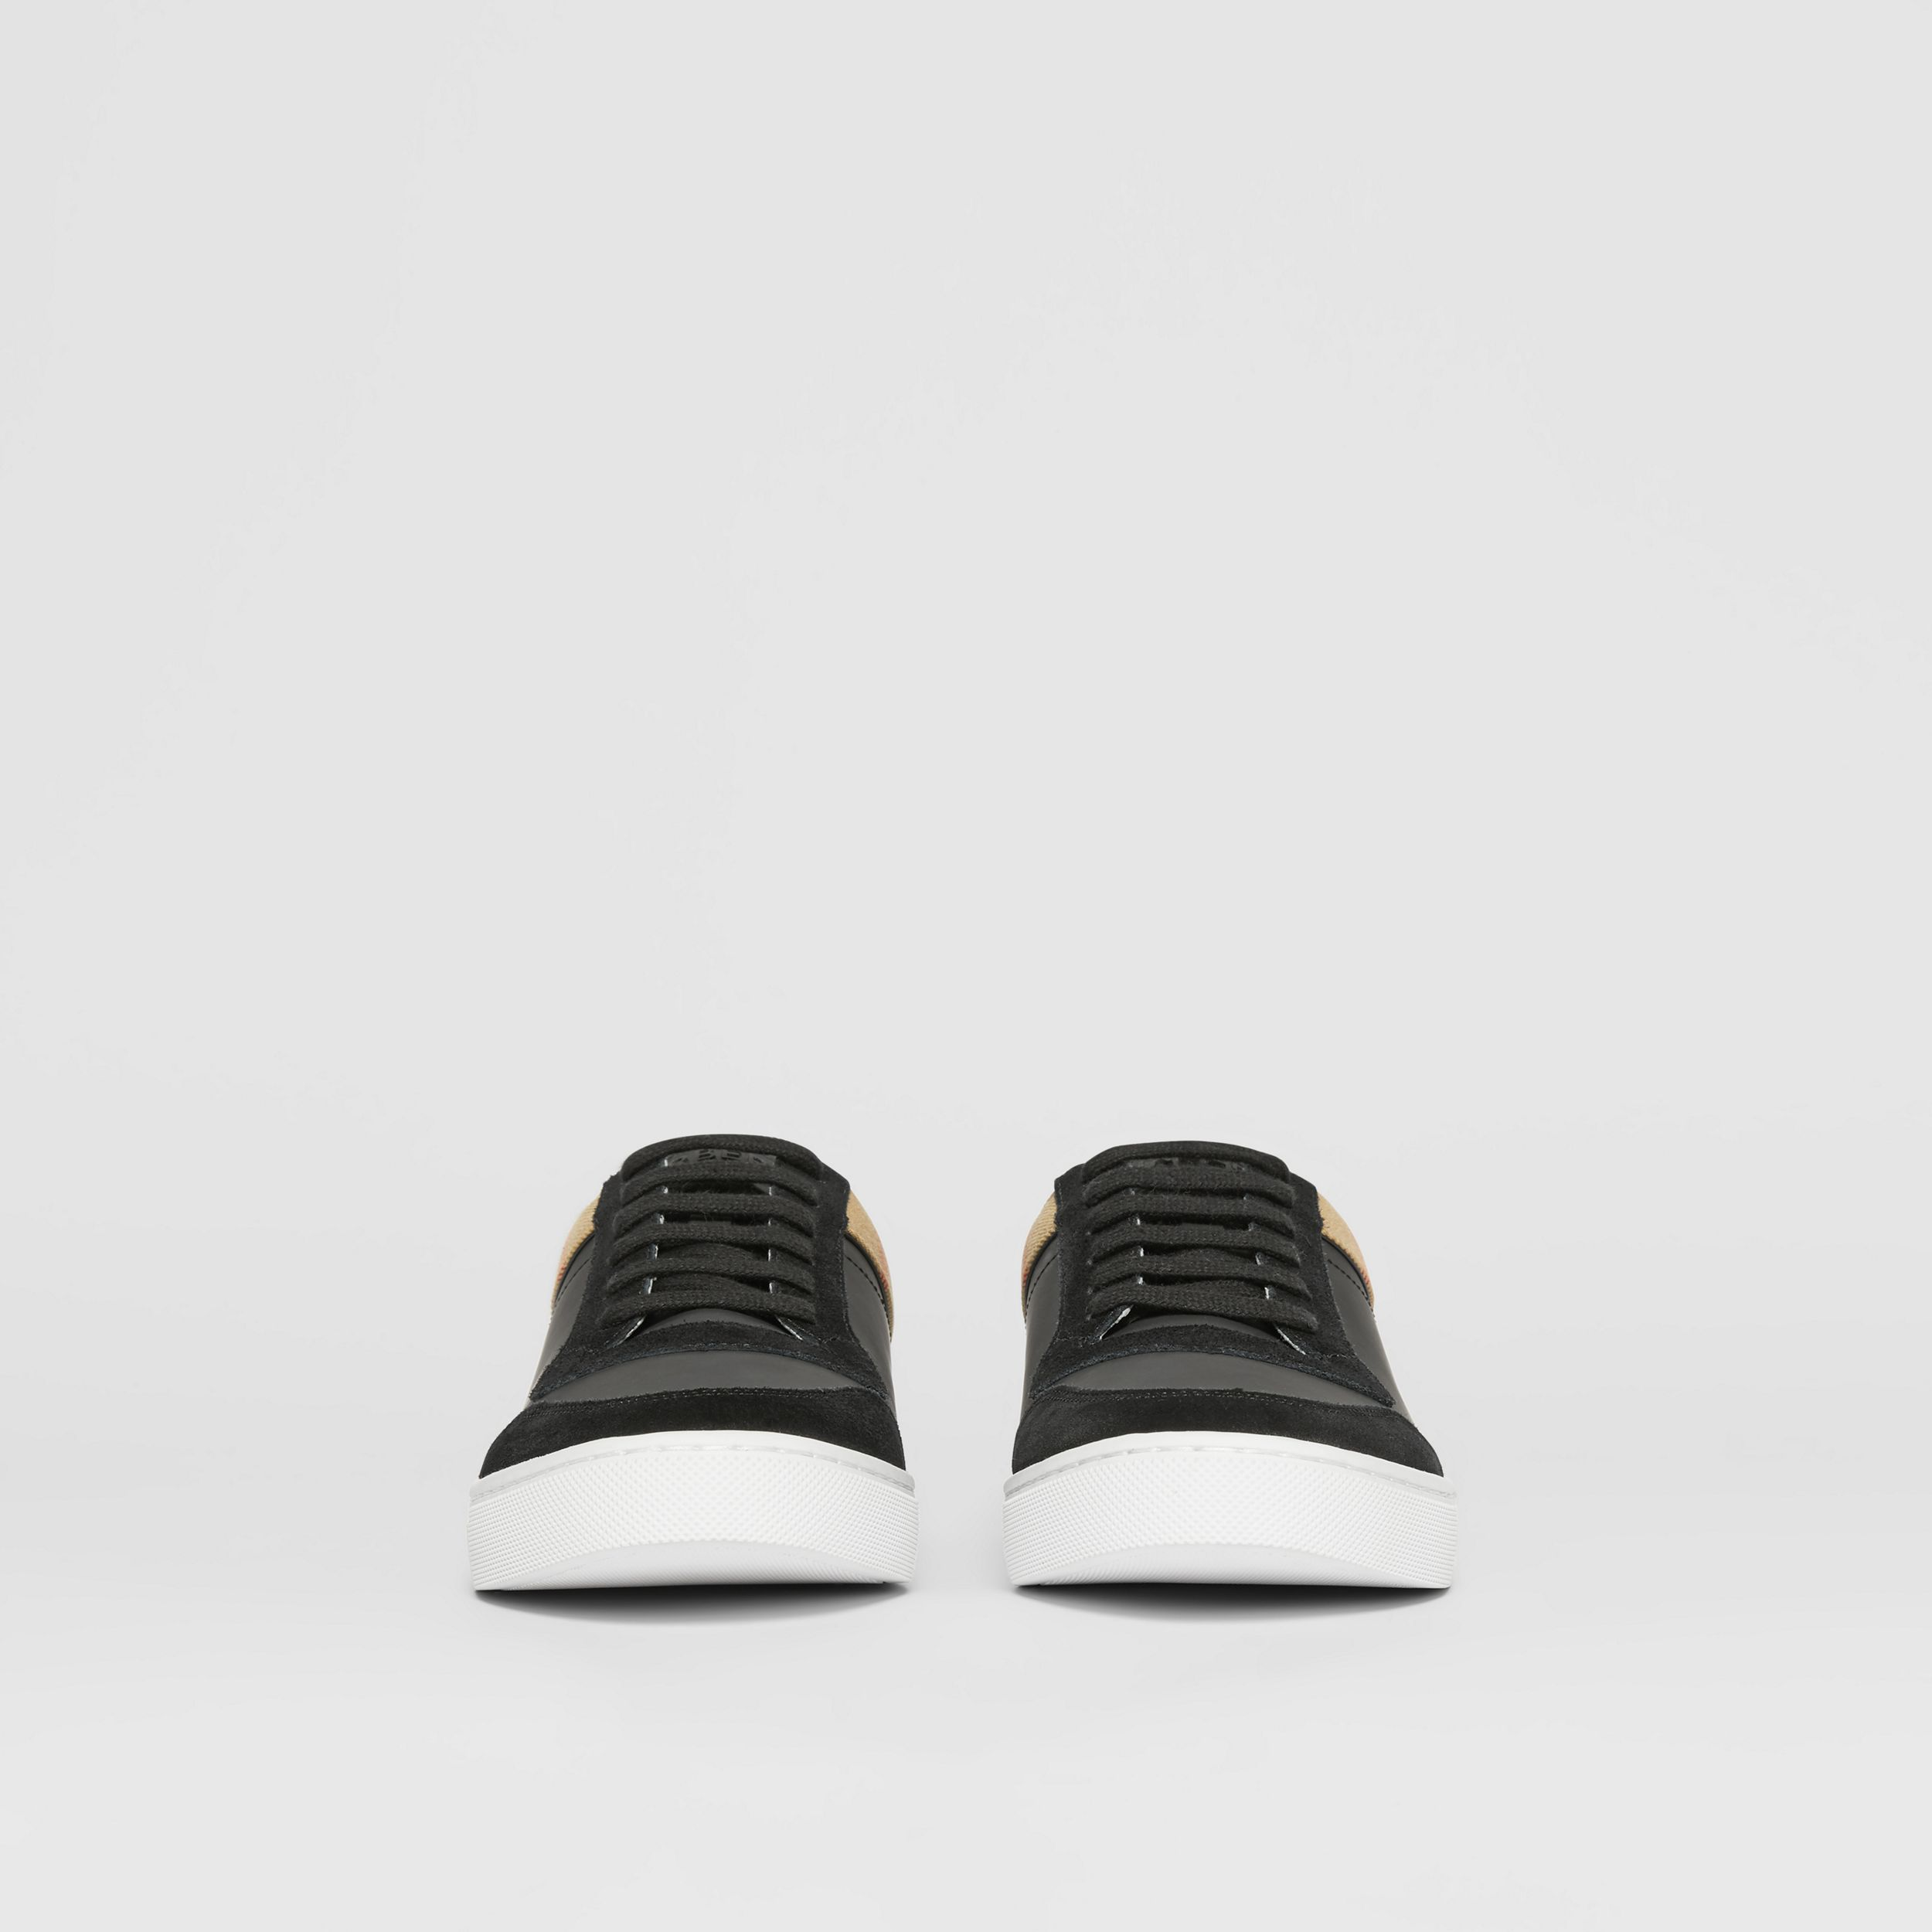 Leather, Suede and House Check Sneakers in Black - Men | Burberry United States - 4